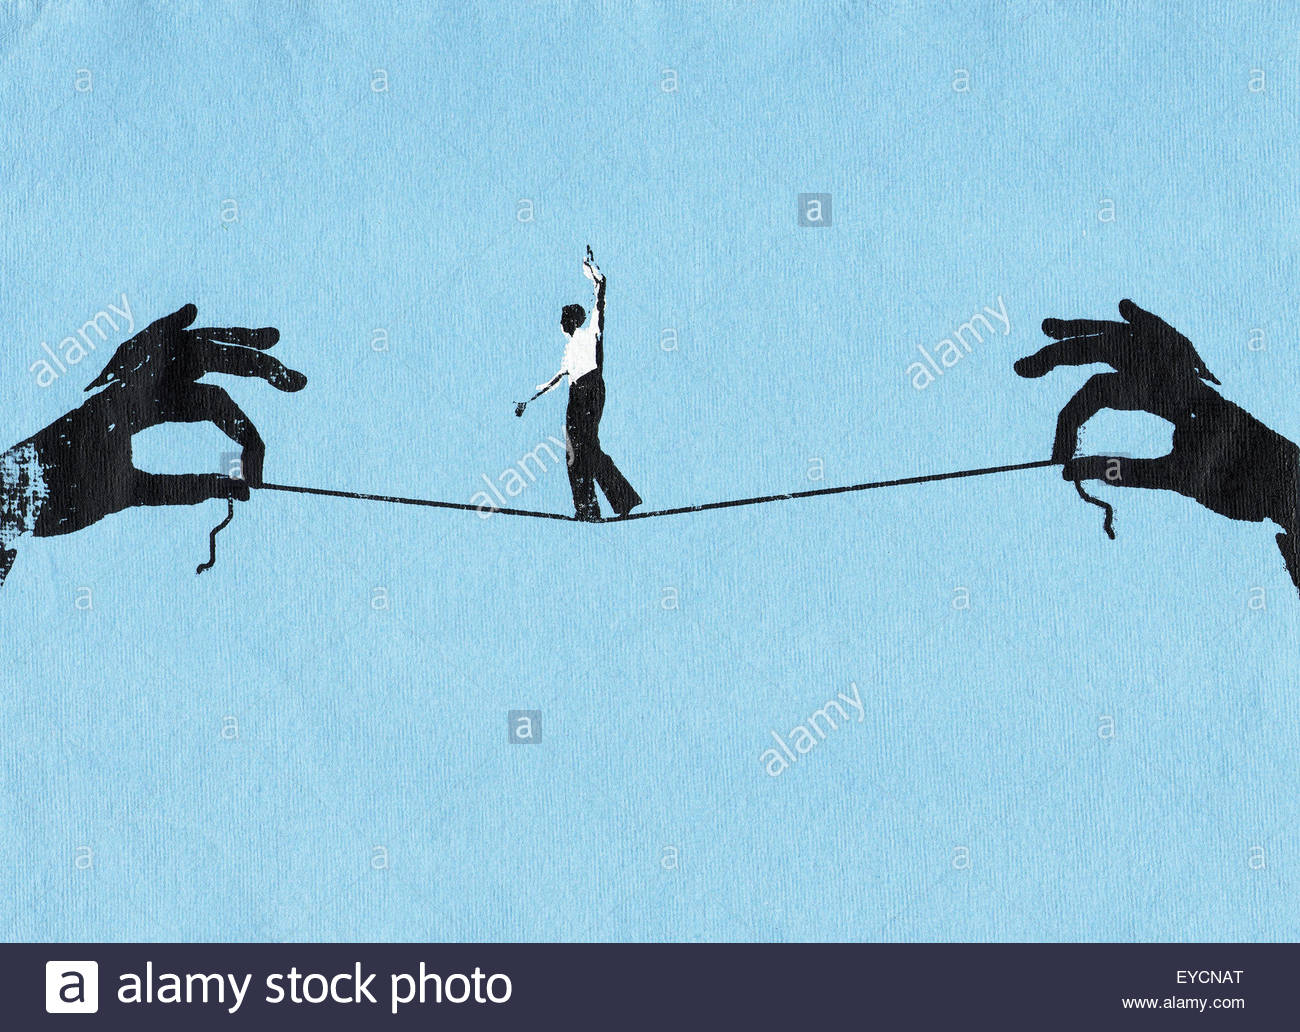 Businessman walking tightrope on string between two hands - Stock Image